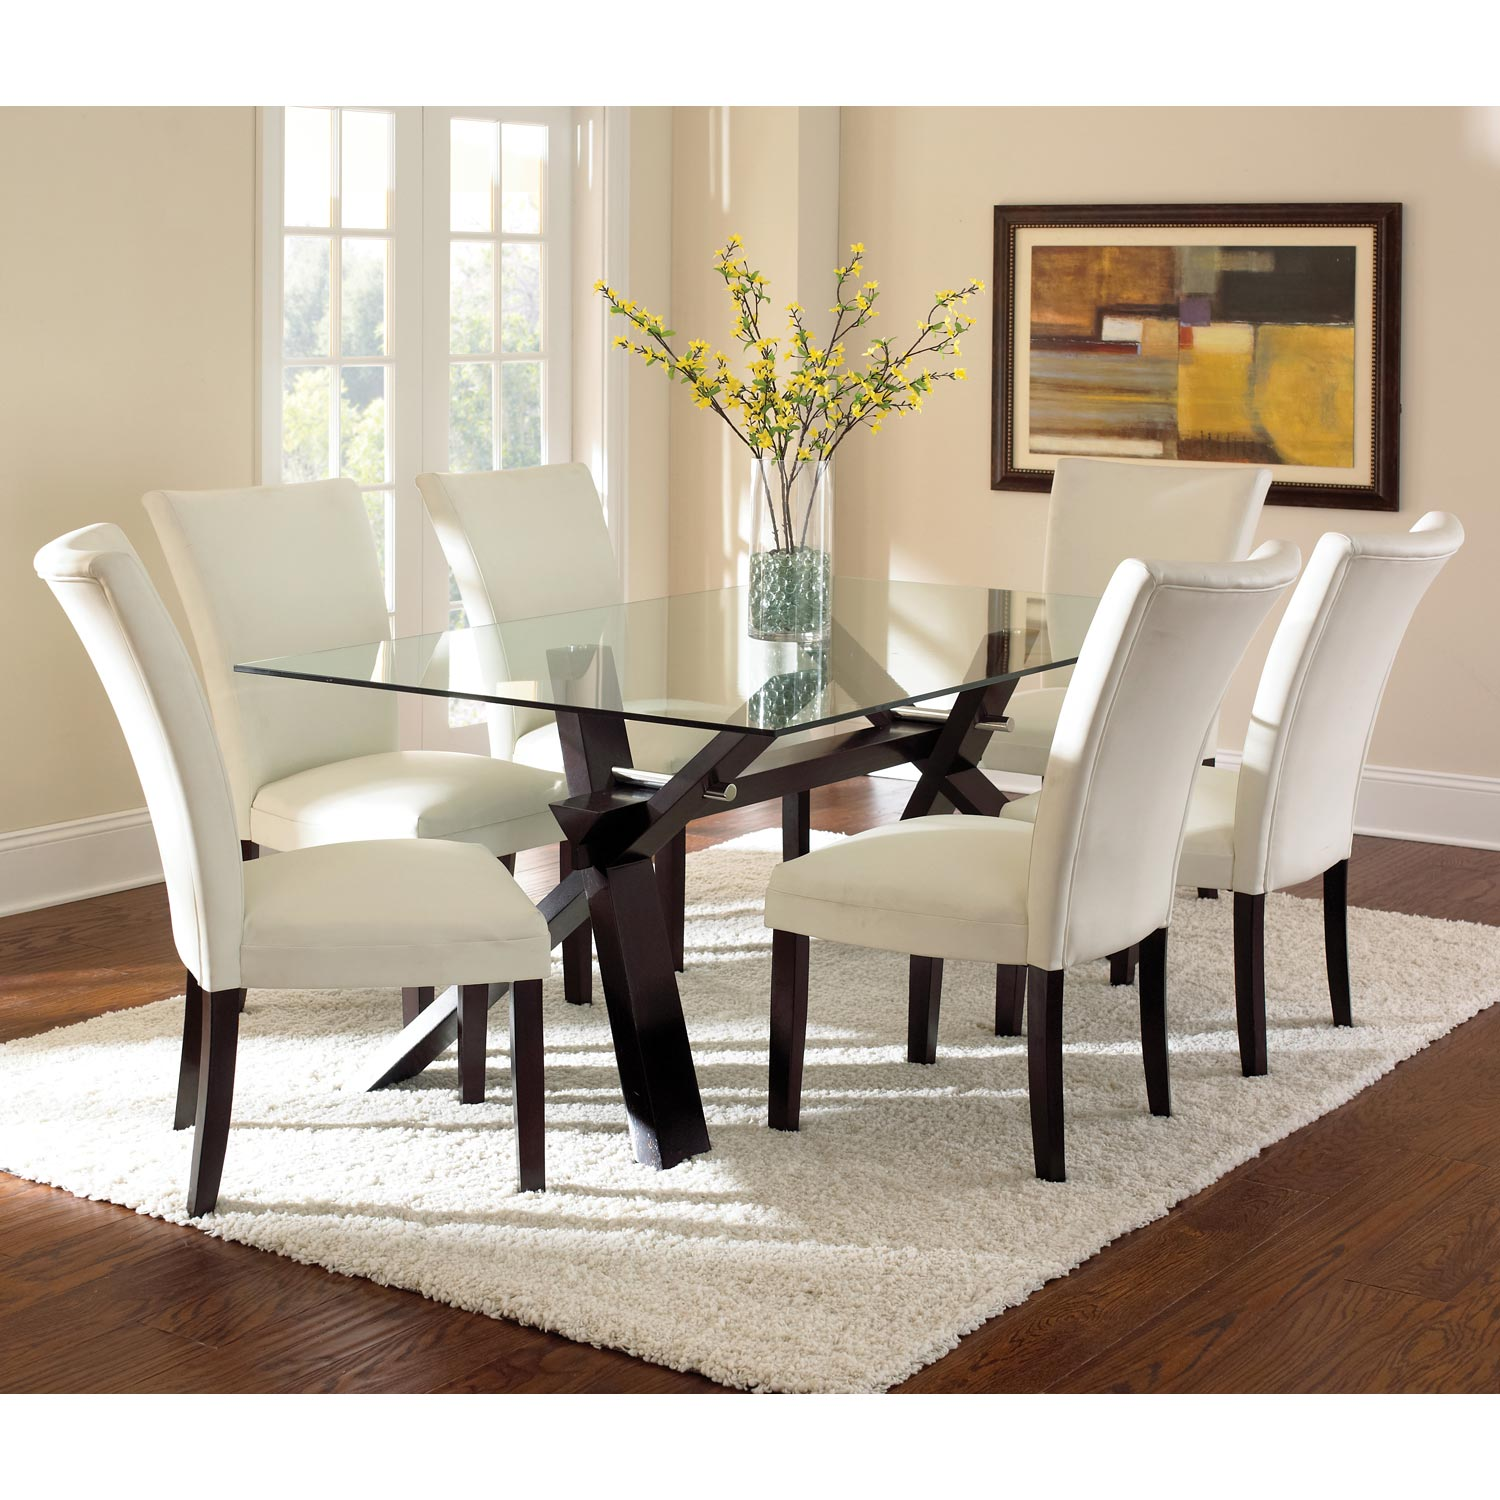 Berkley Leather Parson Chair - White, Wood Legs (Set of 2) - SSC-BE550SN